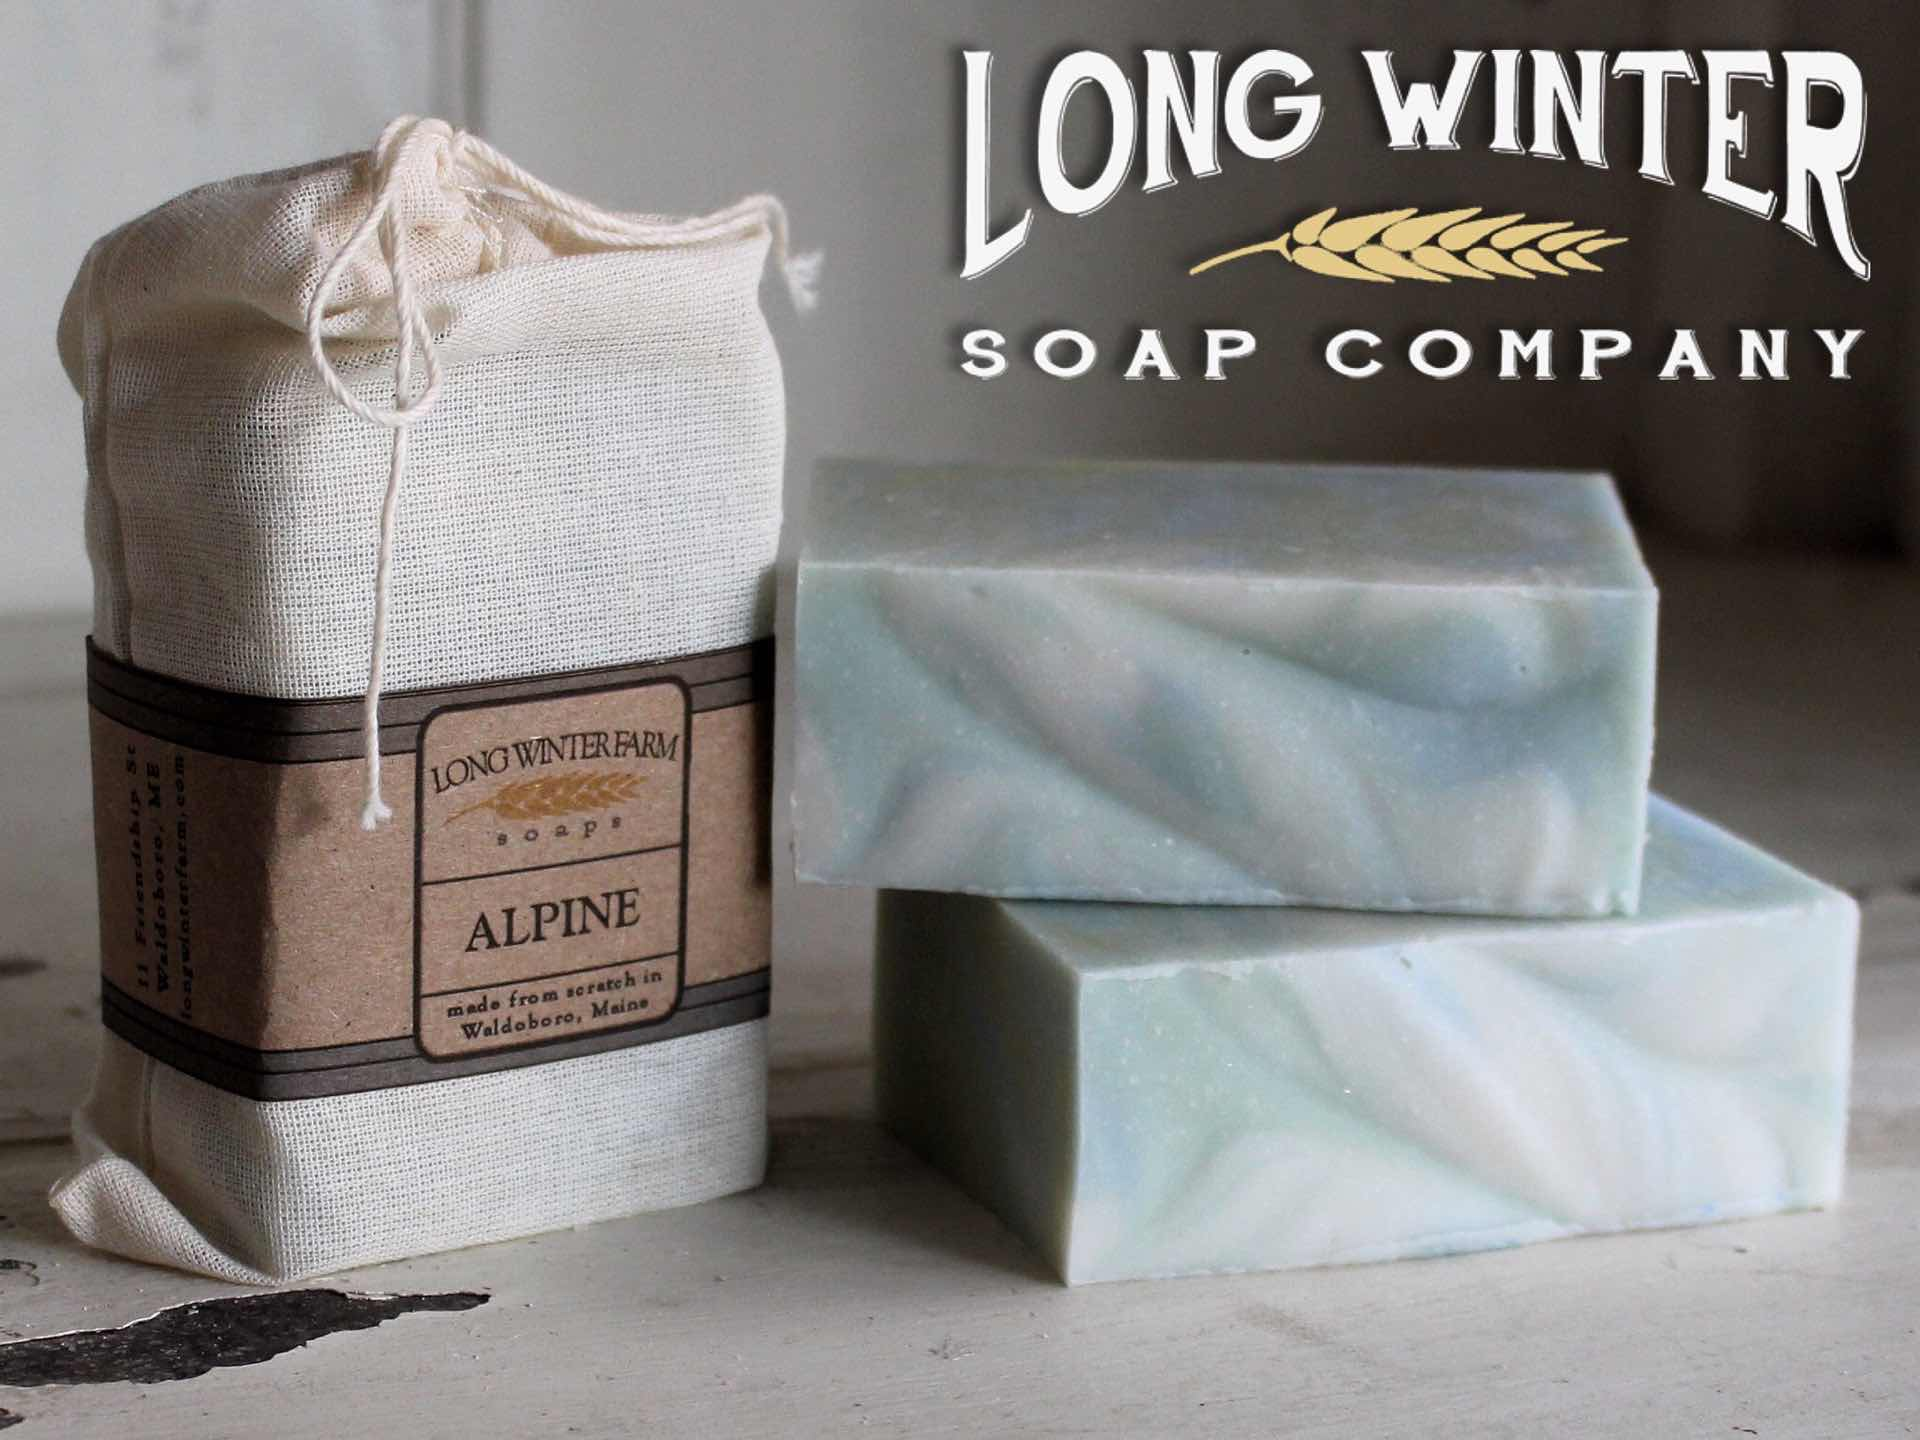 Long Winter Farm's cold-process soaps. ($8 per five-ounce bar)